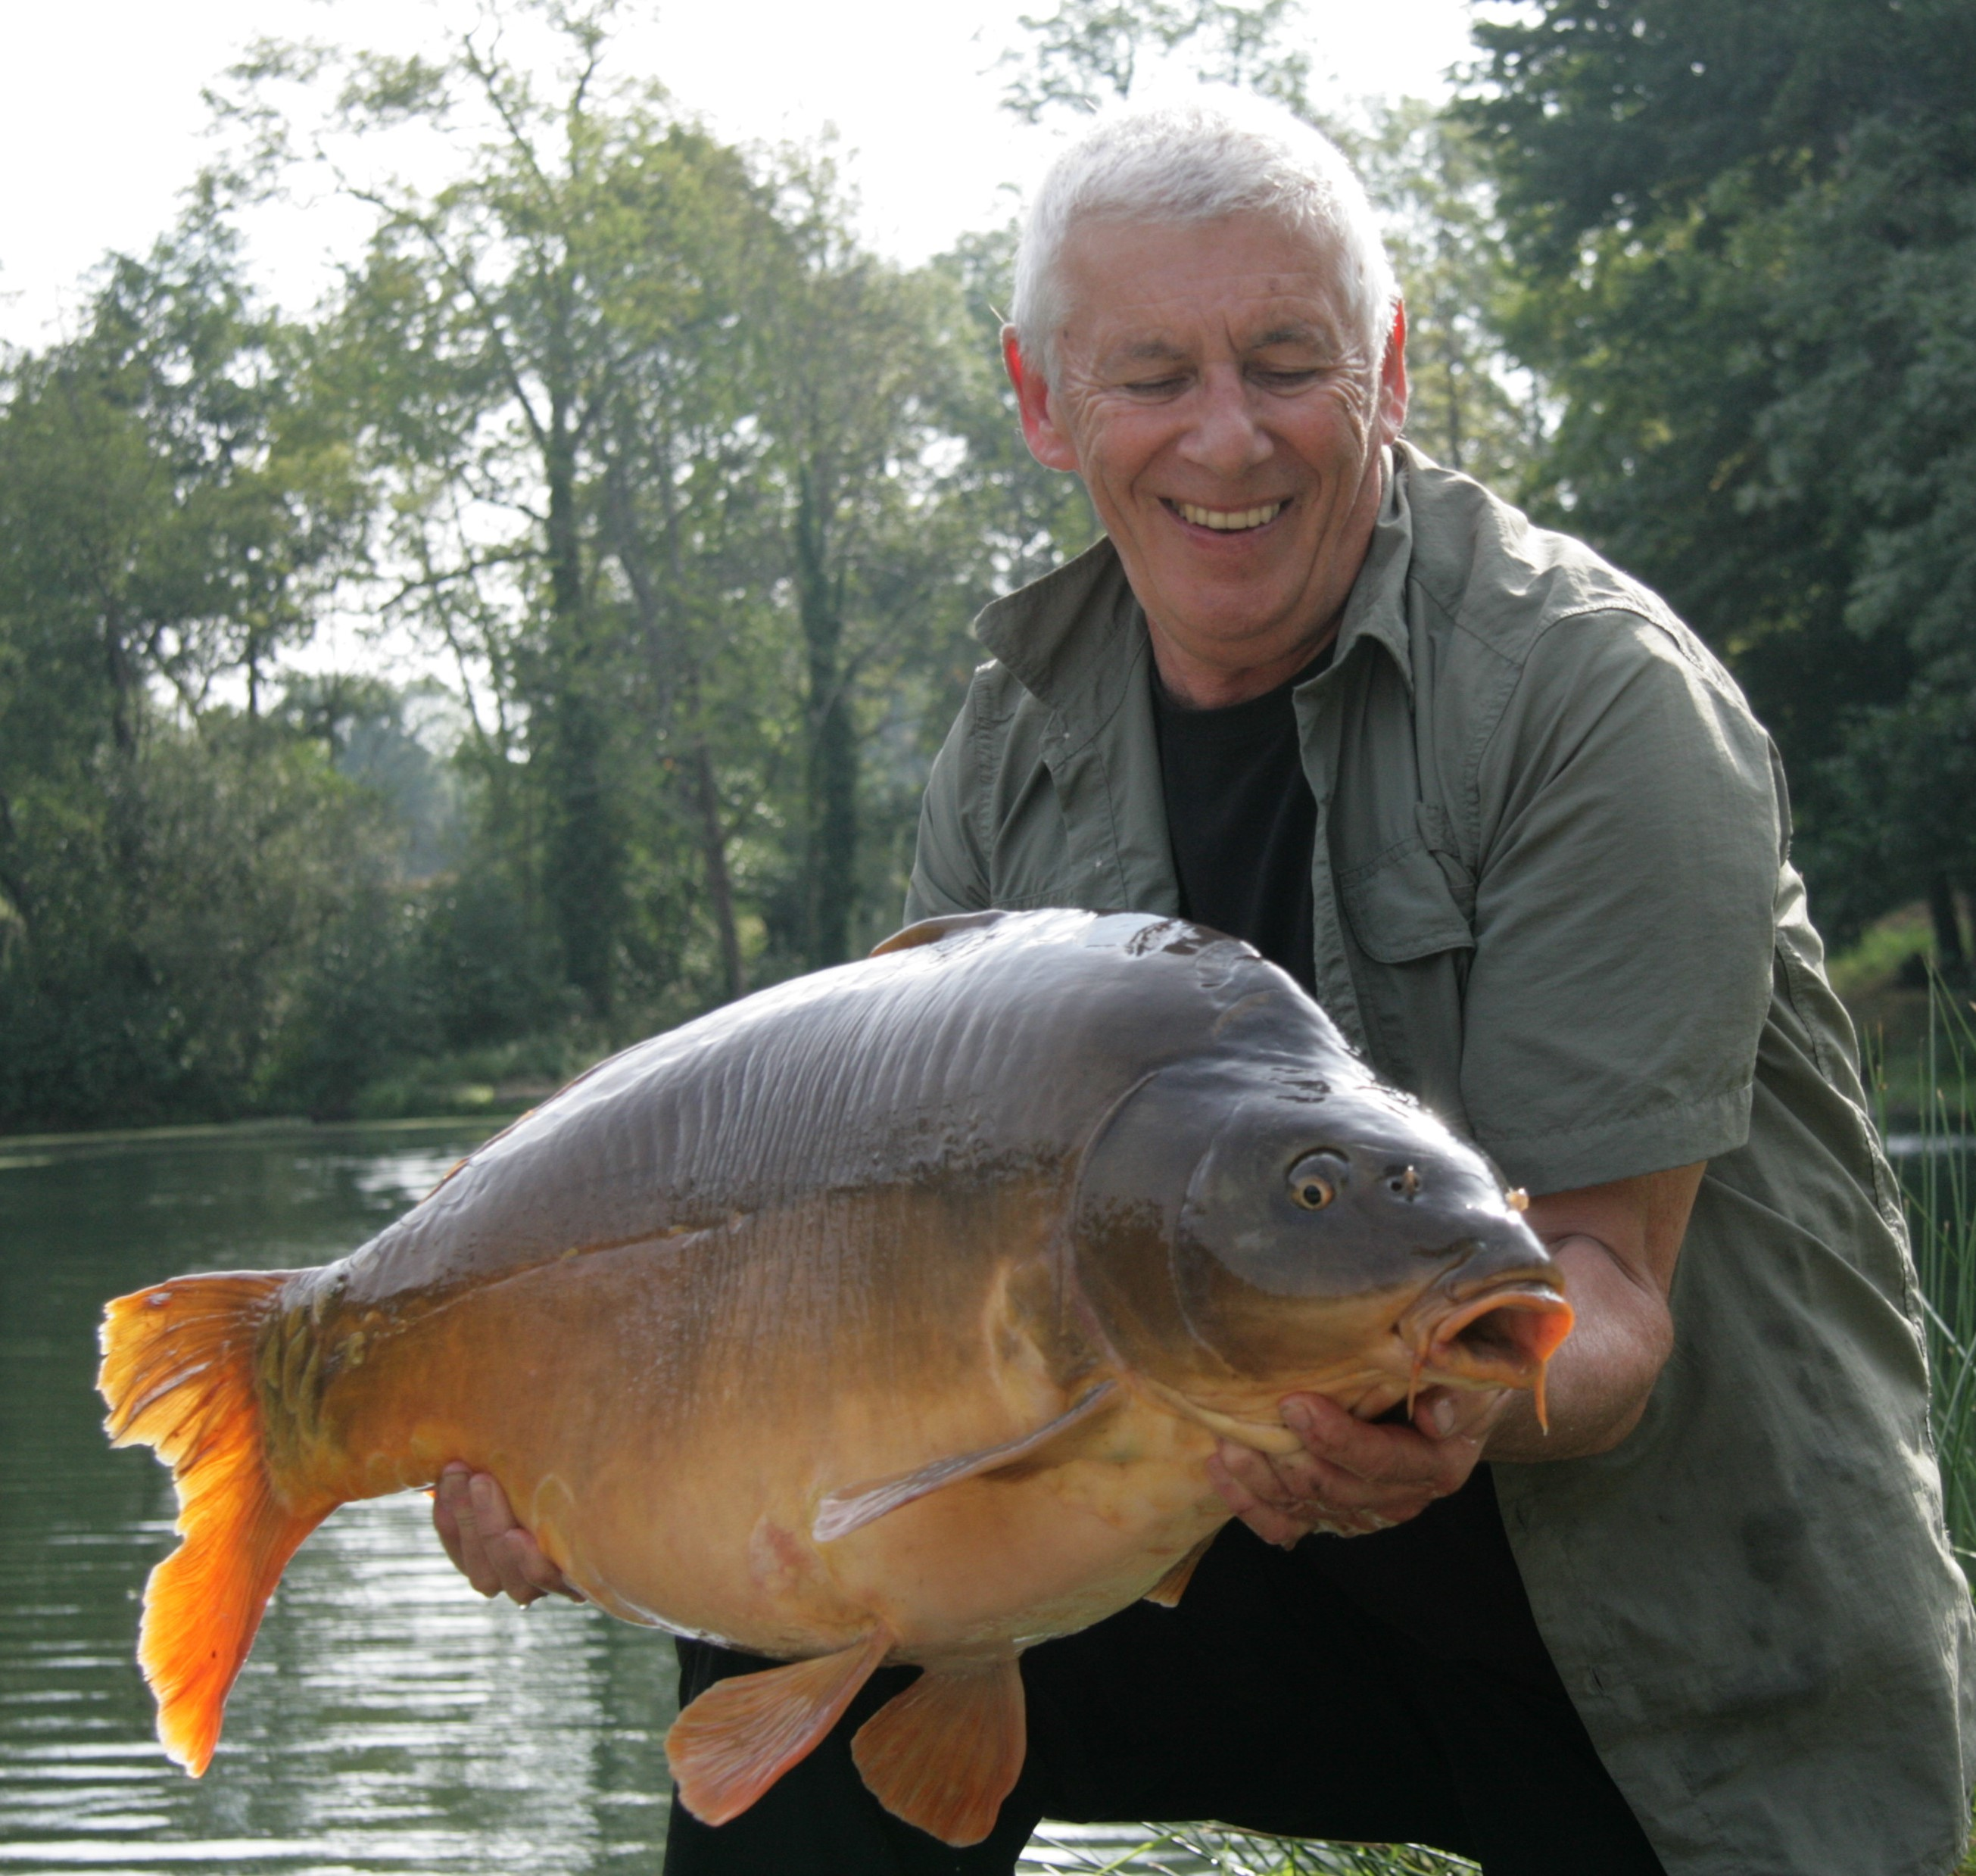 https://www.puyravaudcarp.com/wp-content/uploads/2016/10/36.111.jpg